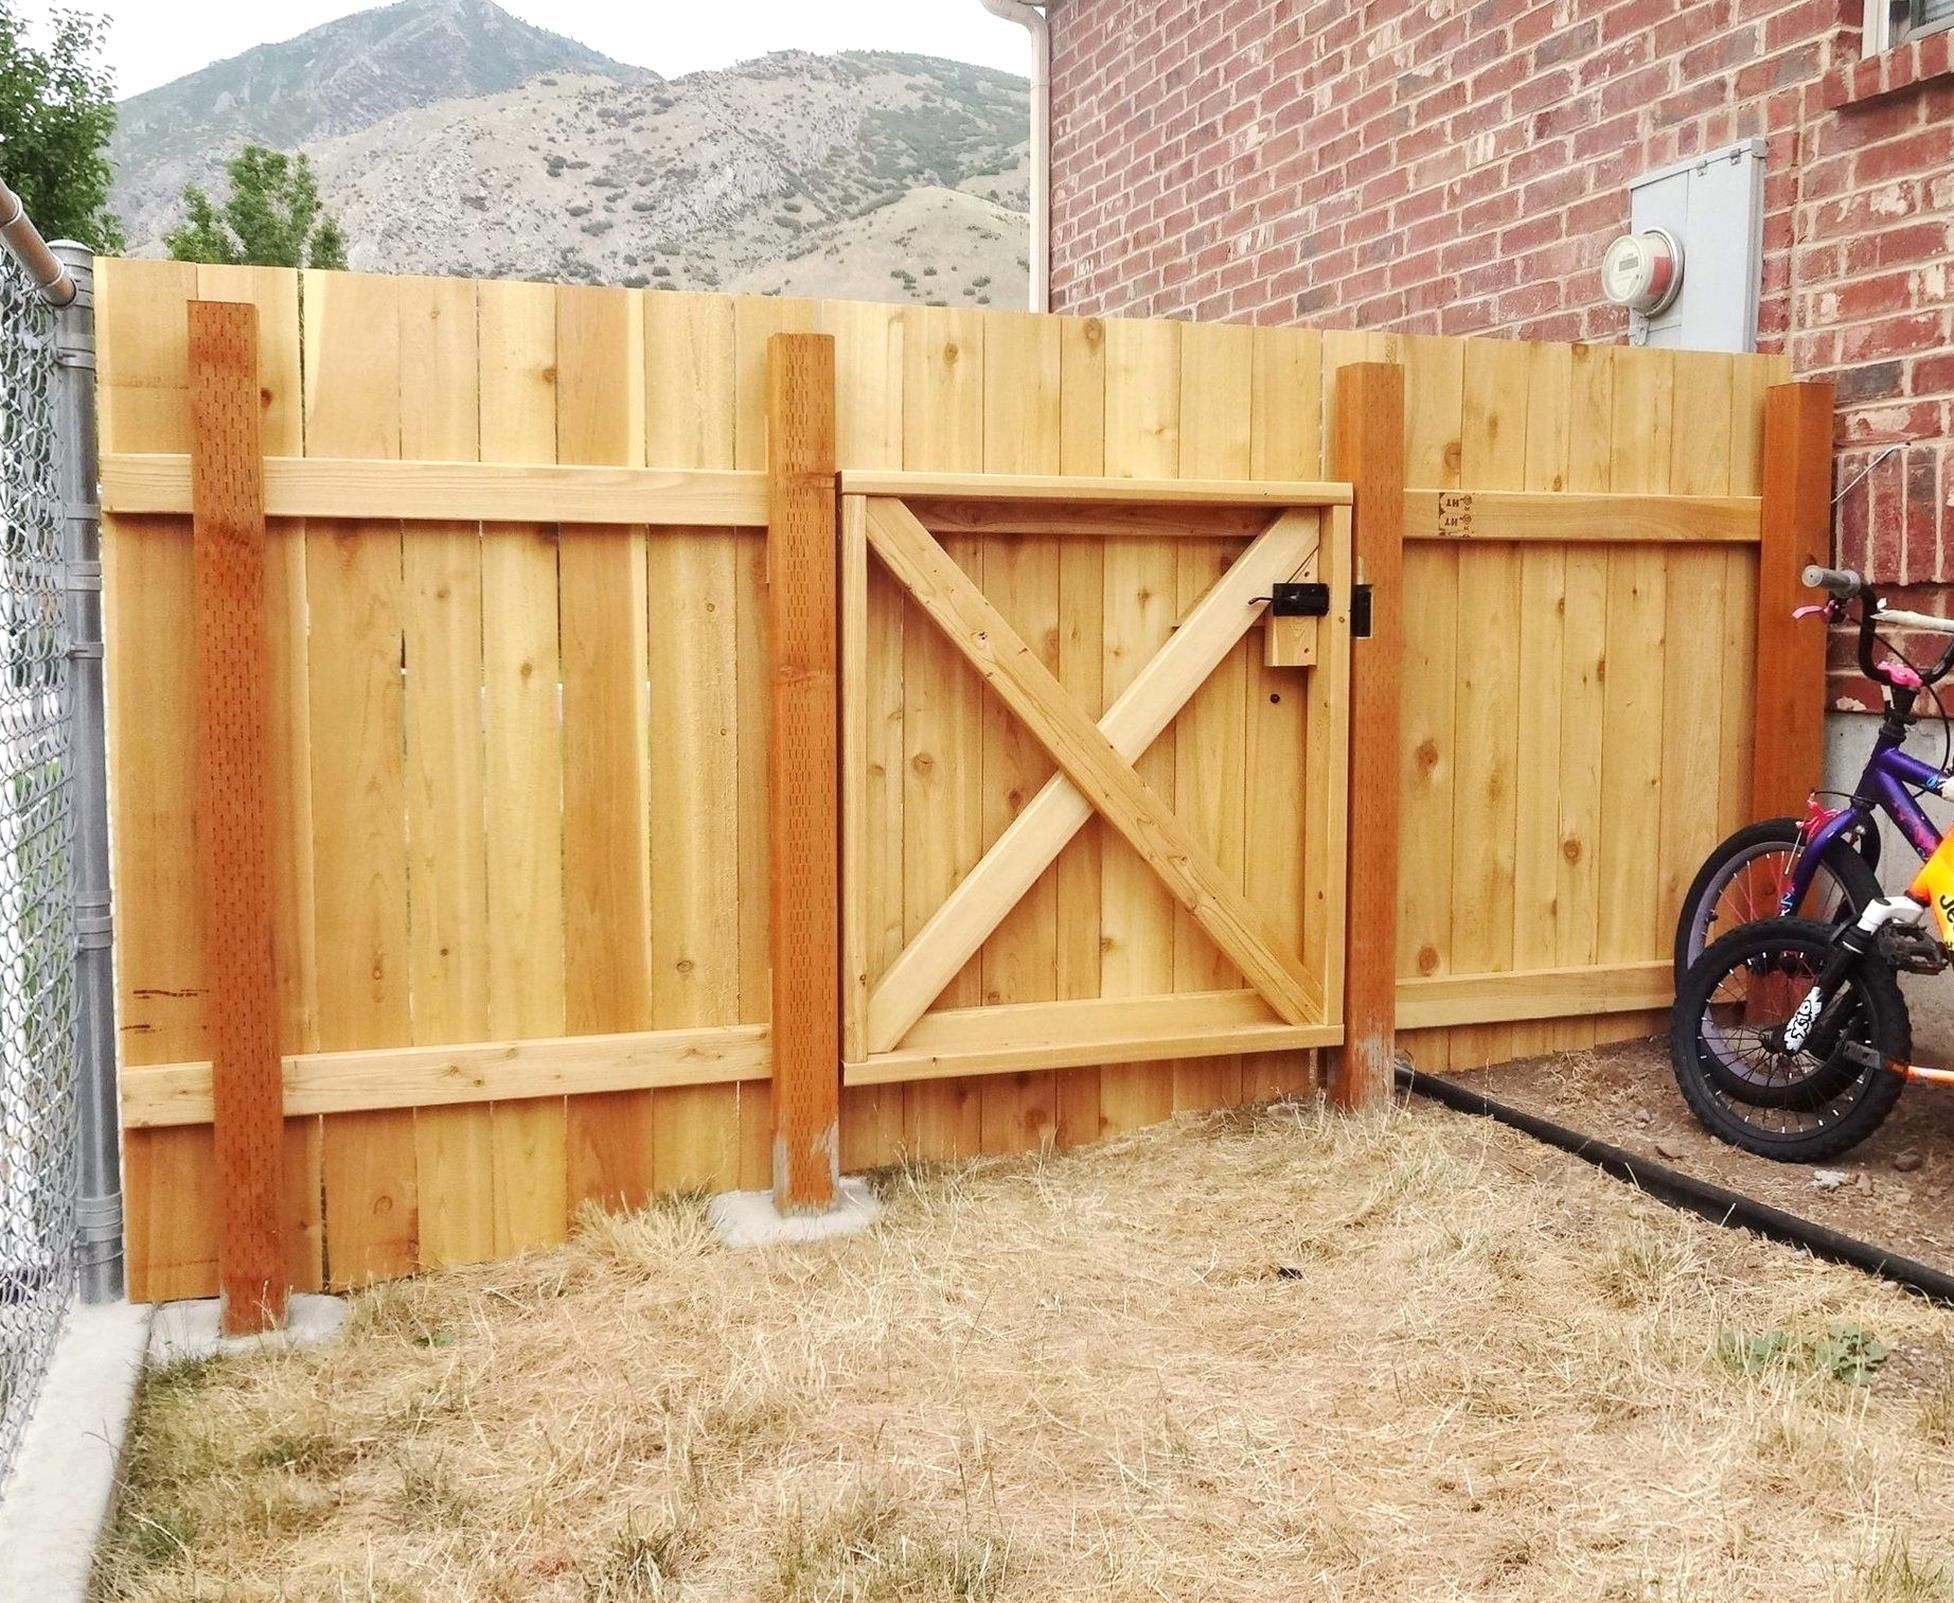 Good Instructions And Funny Too Build A Wooden Fence And Gate